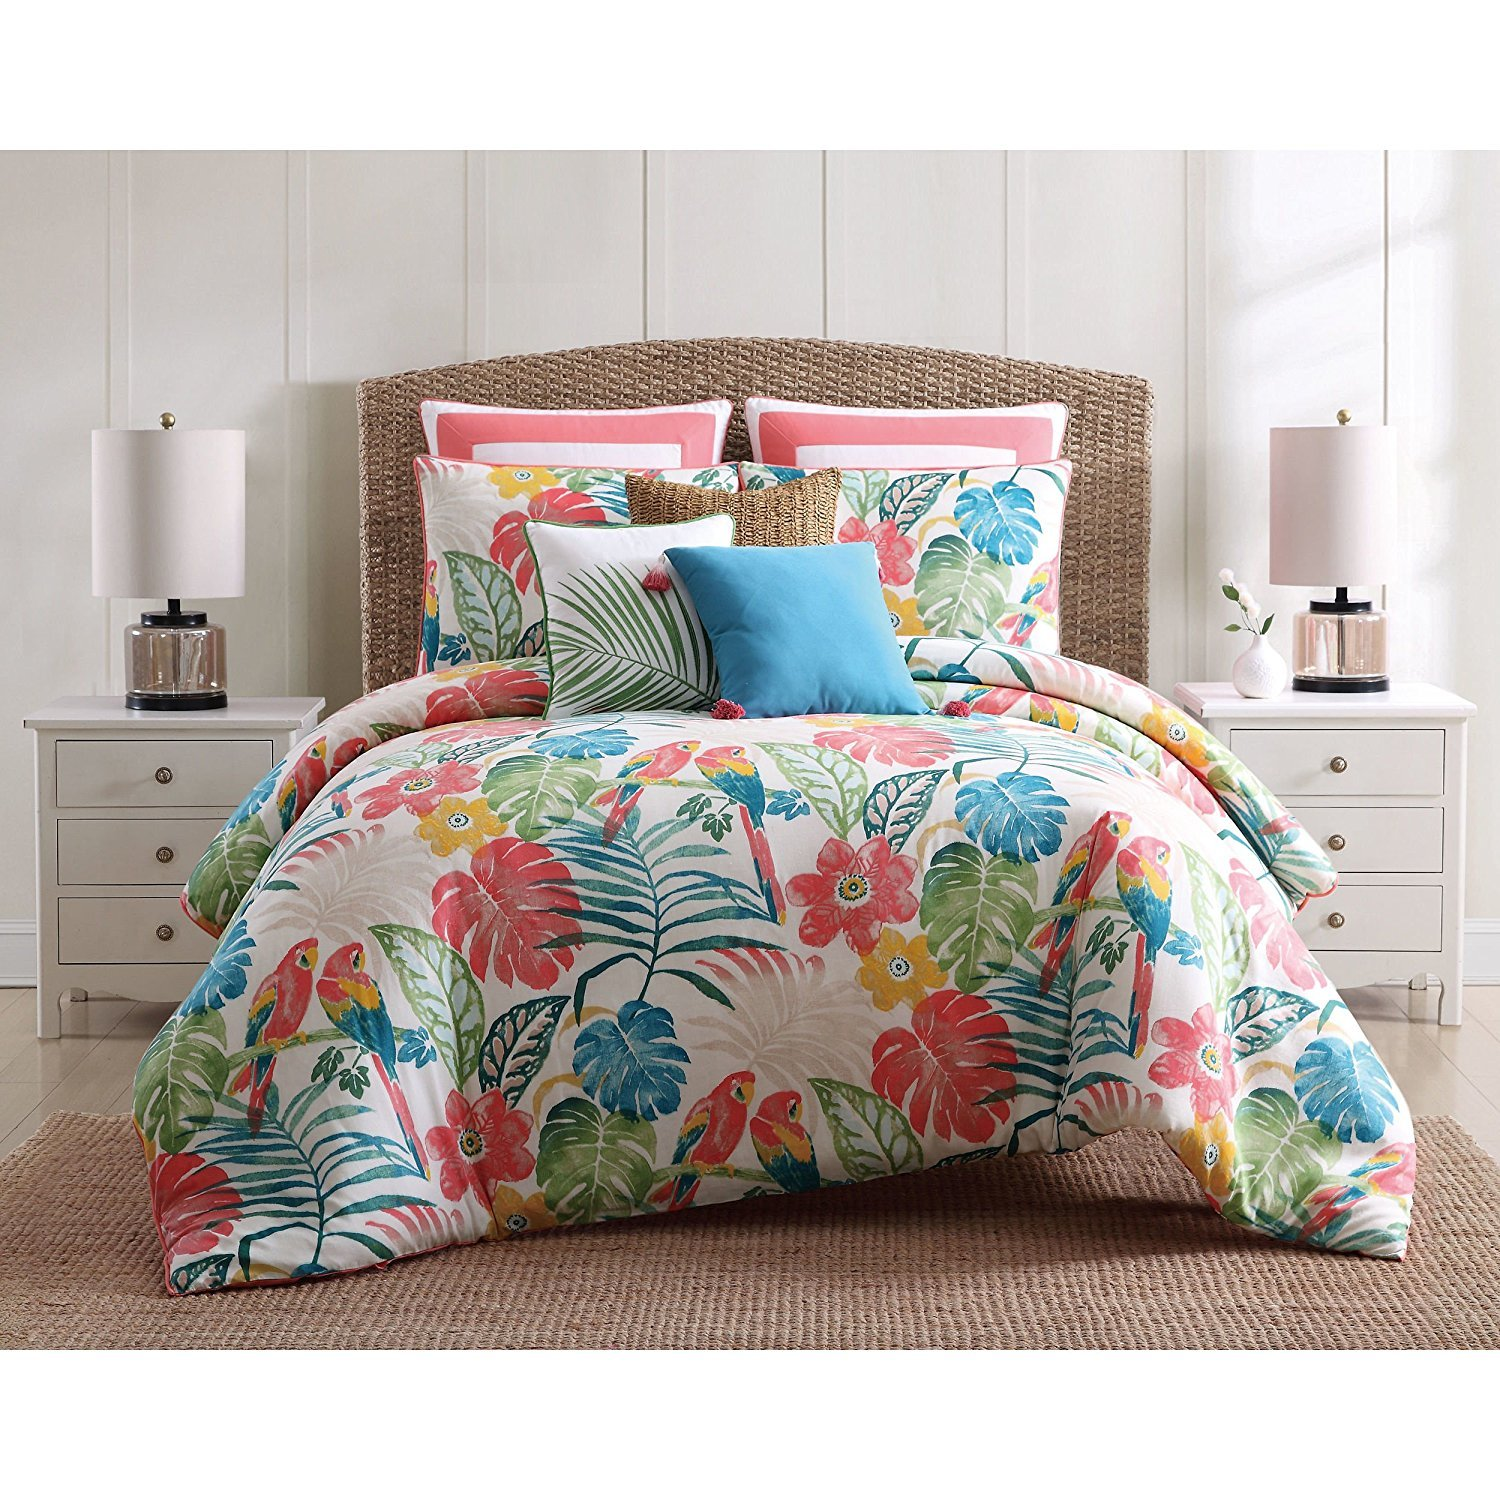 Image of: Theme Bright Colorful Bedding Sets